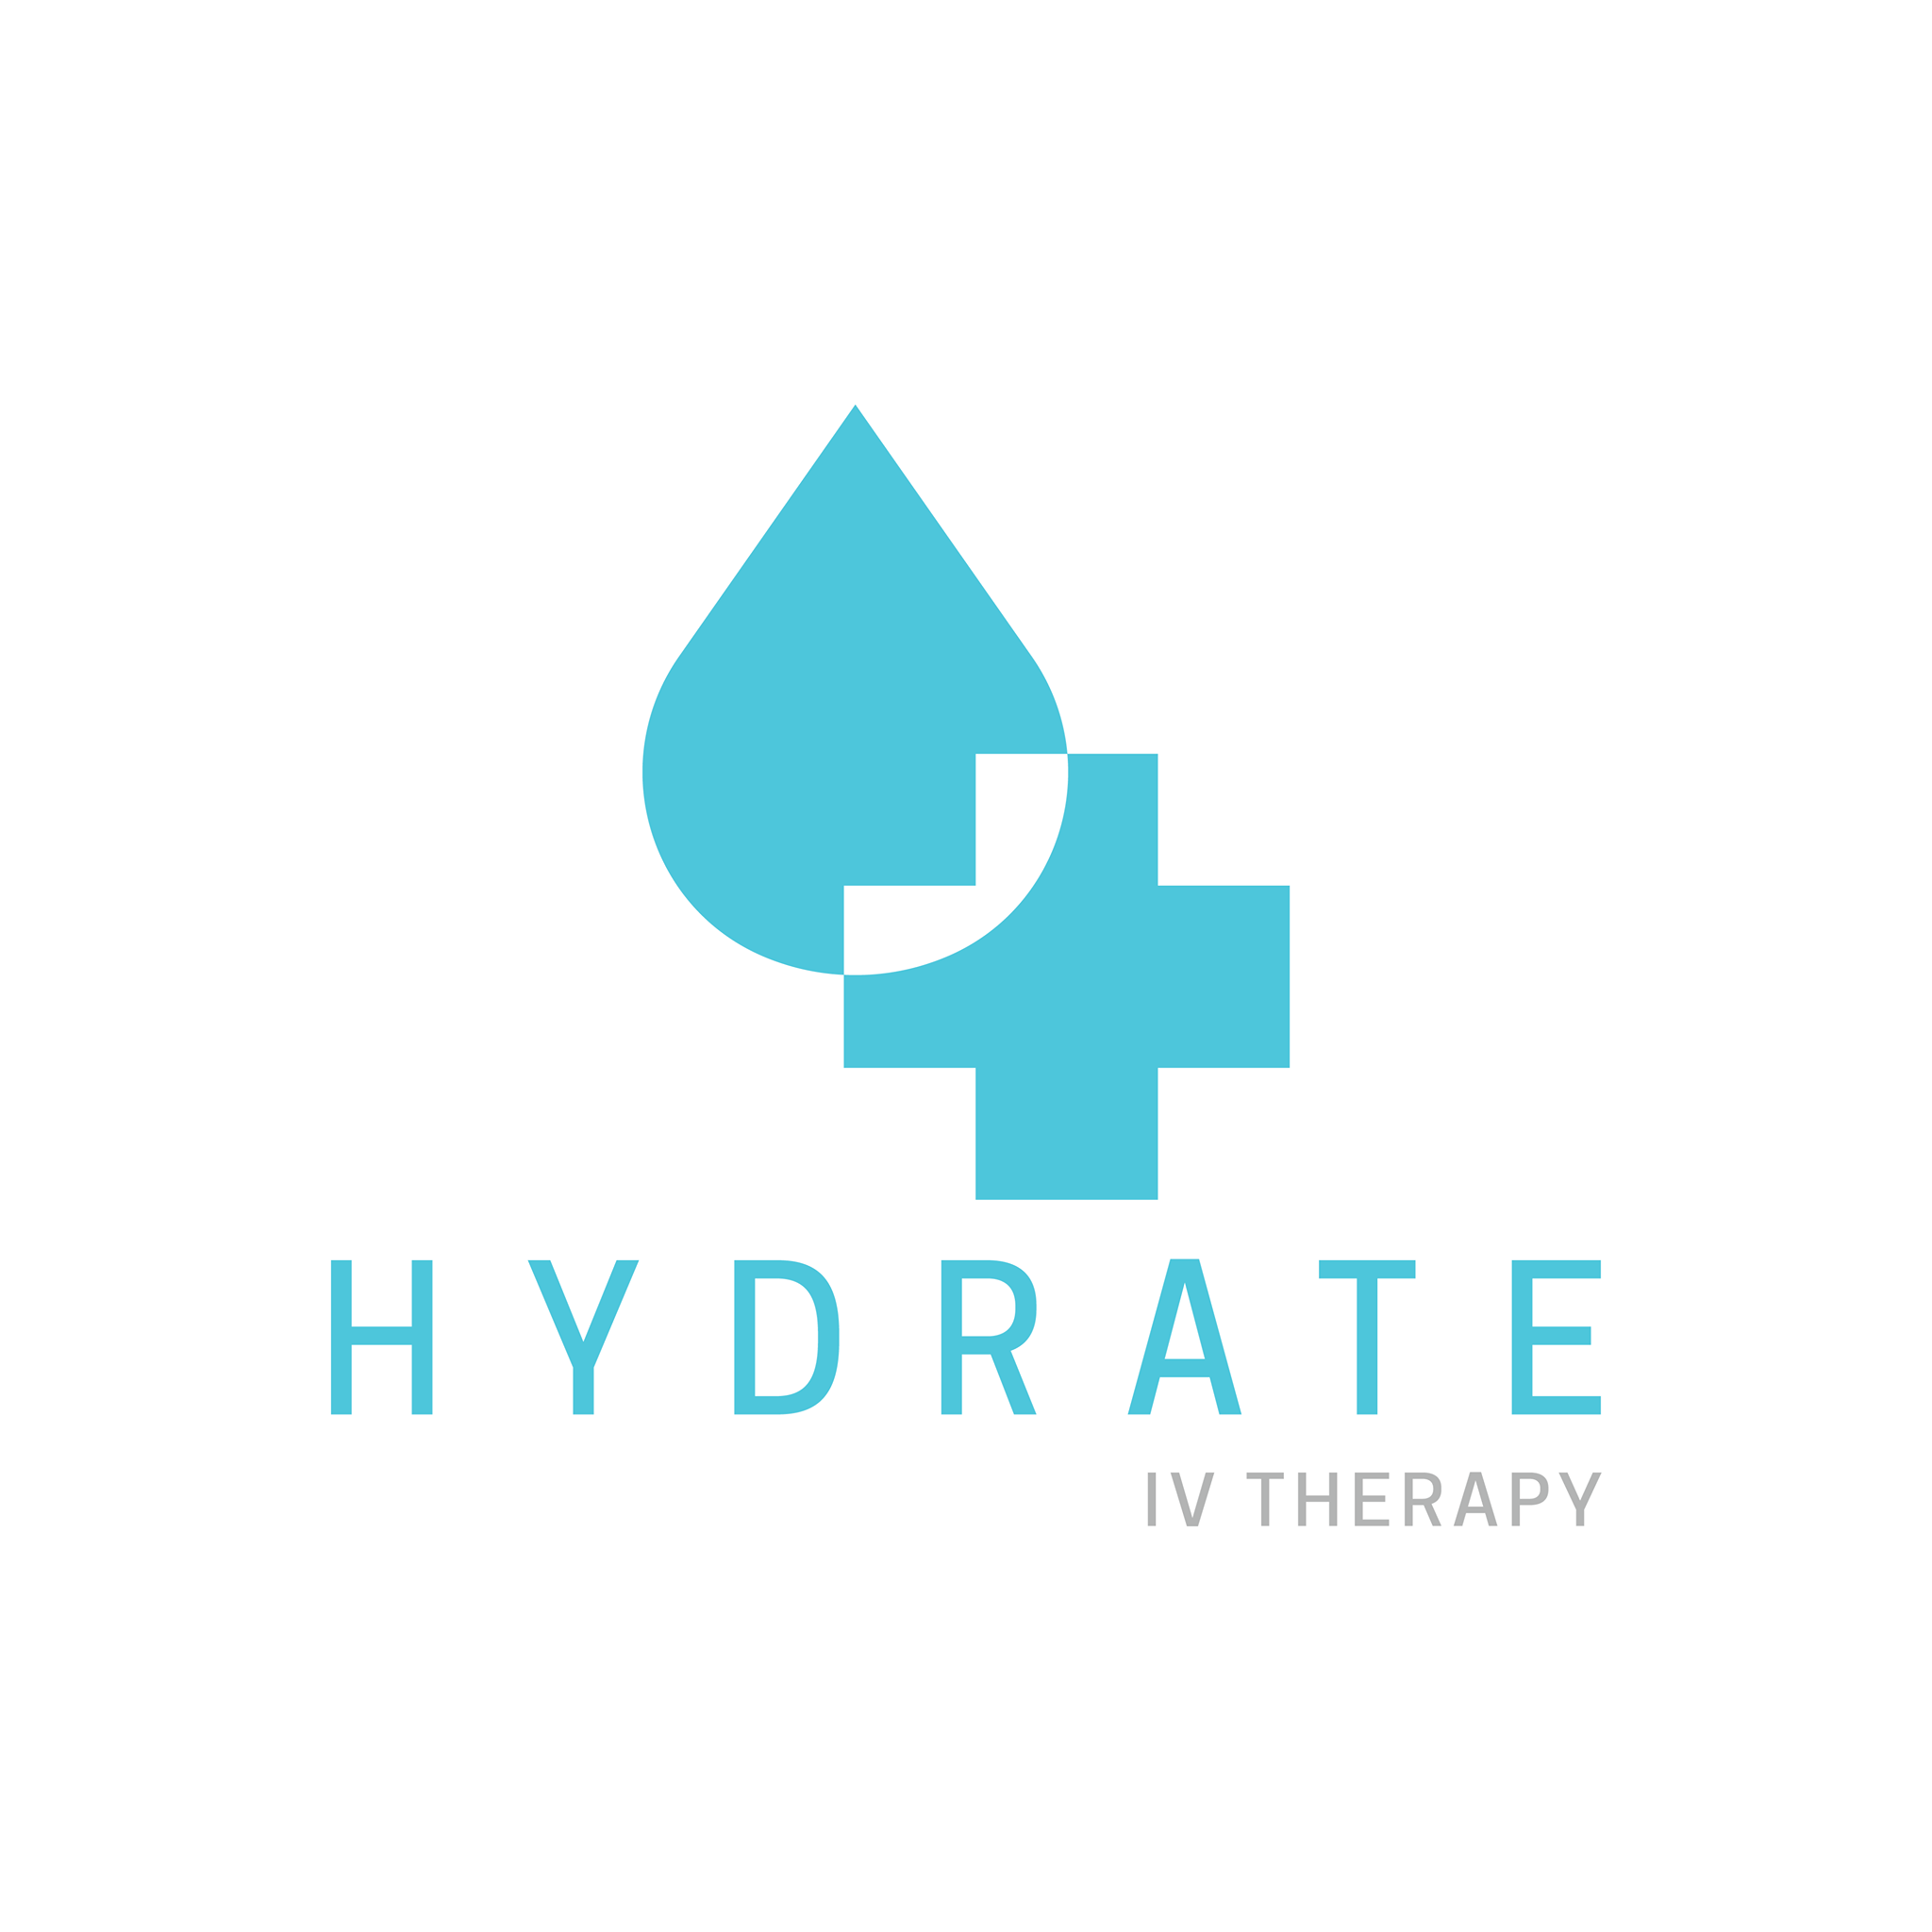 Hydrate IV Therapy